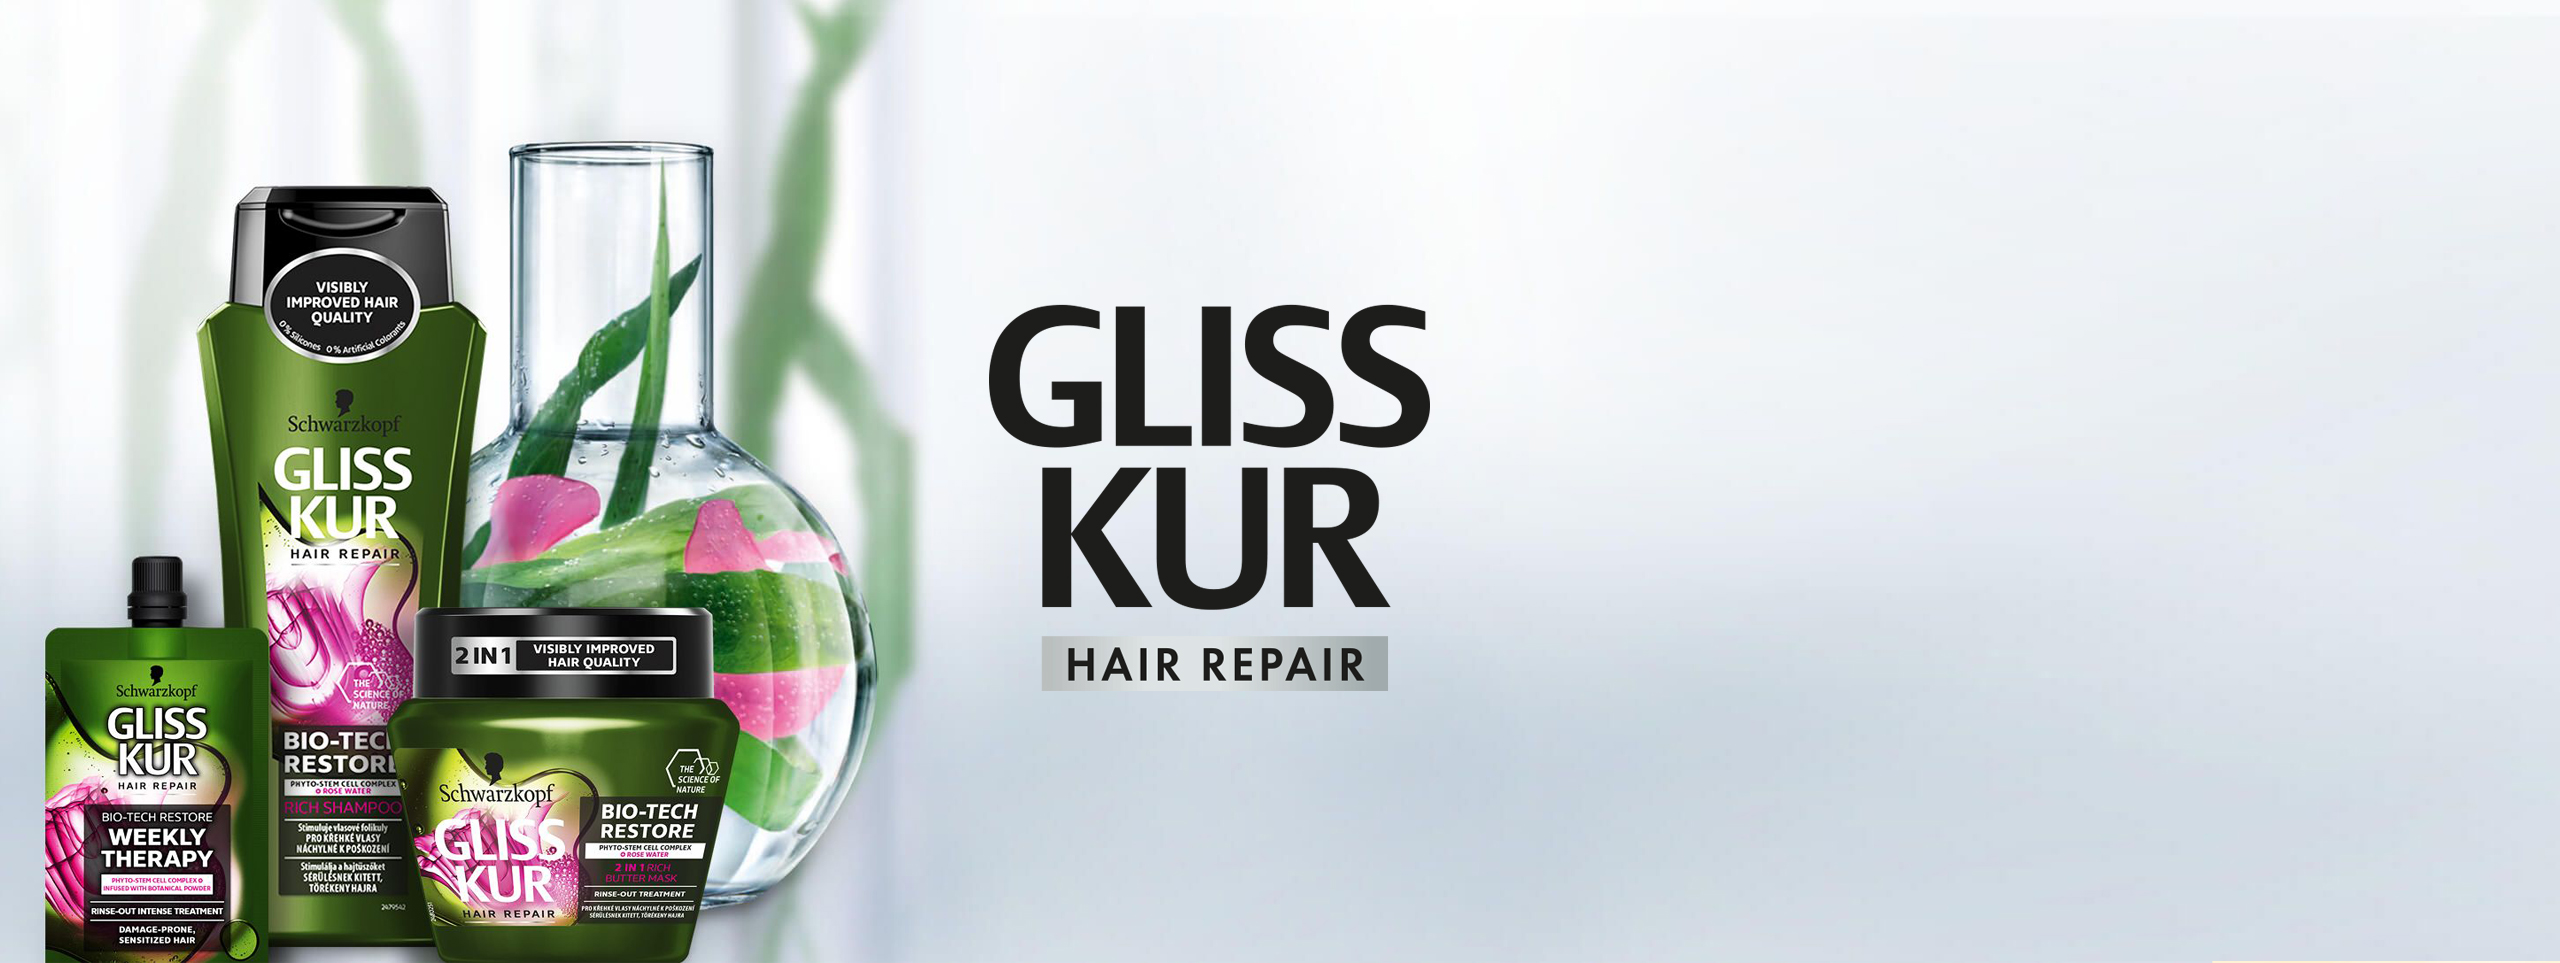 Gliss Kur - Bio-Tech Restore